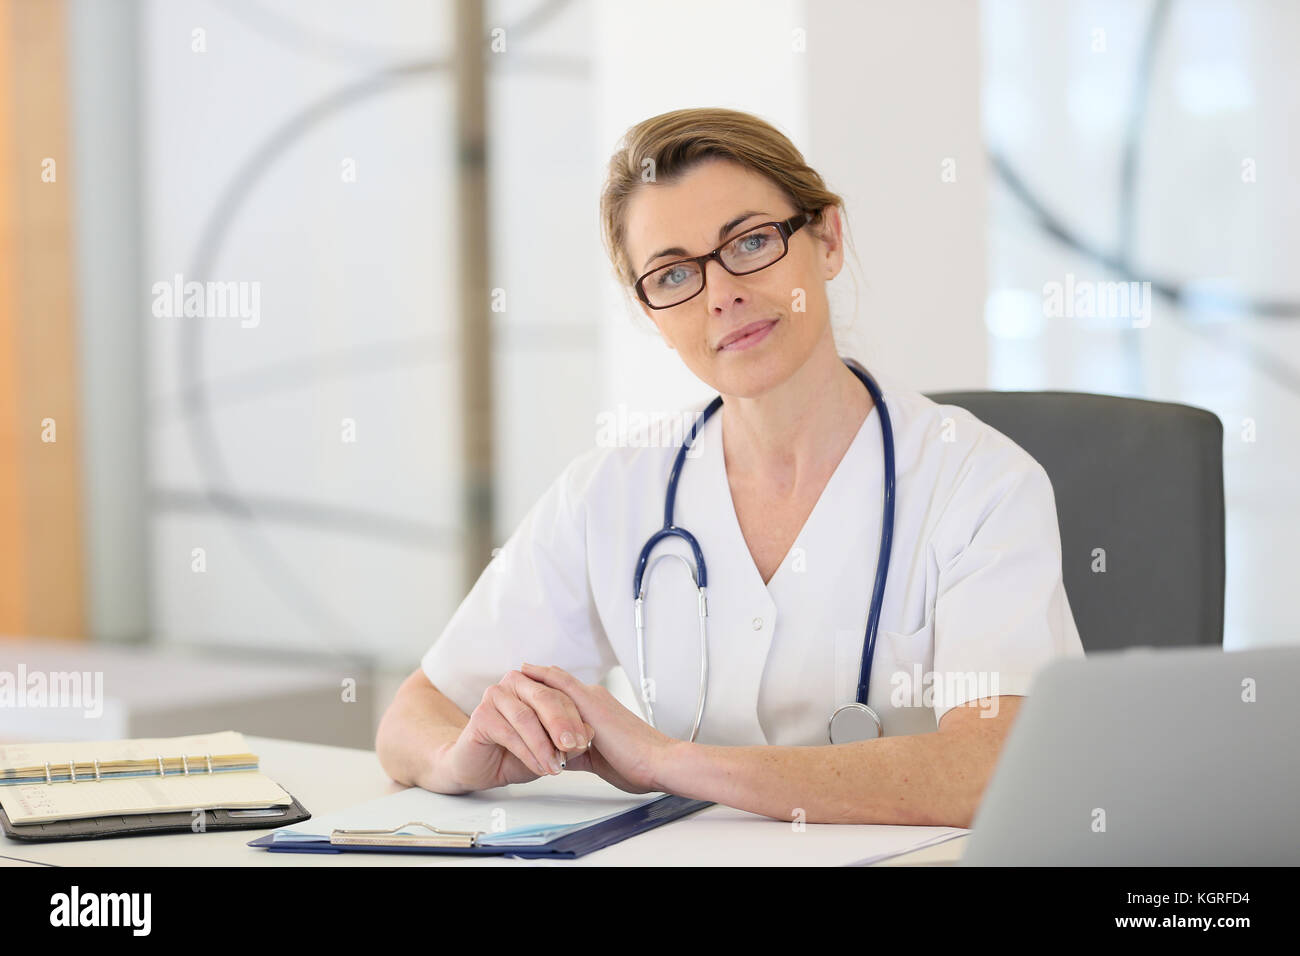 Portrait of mature Nurse sitting at desk in office Photo Stock